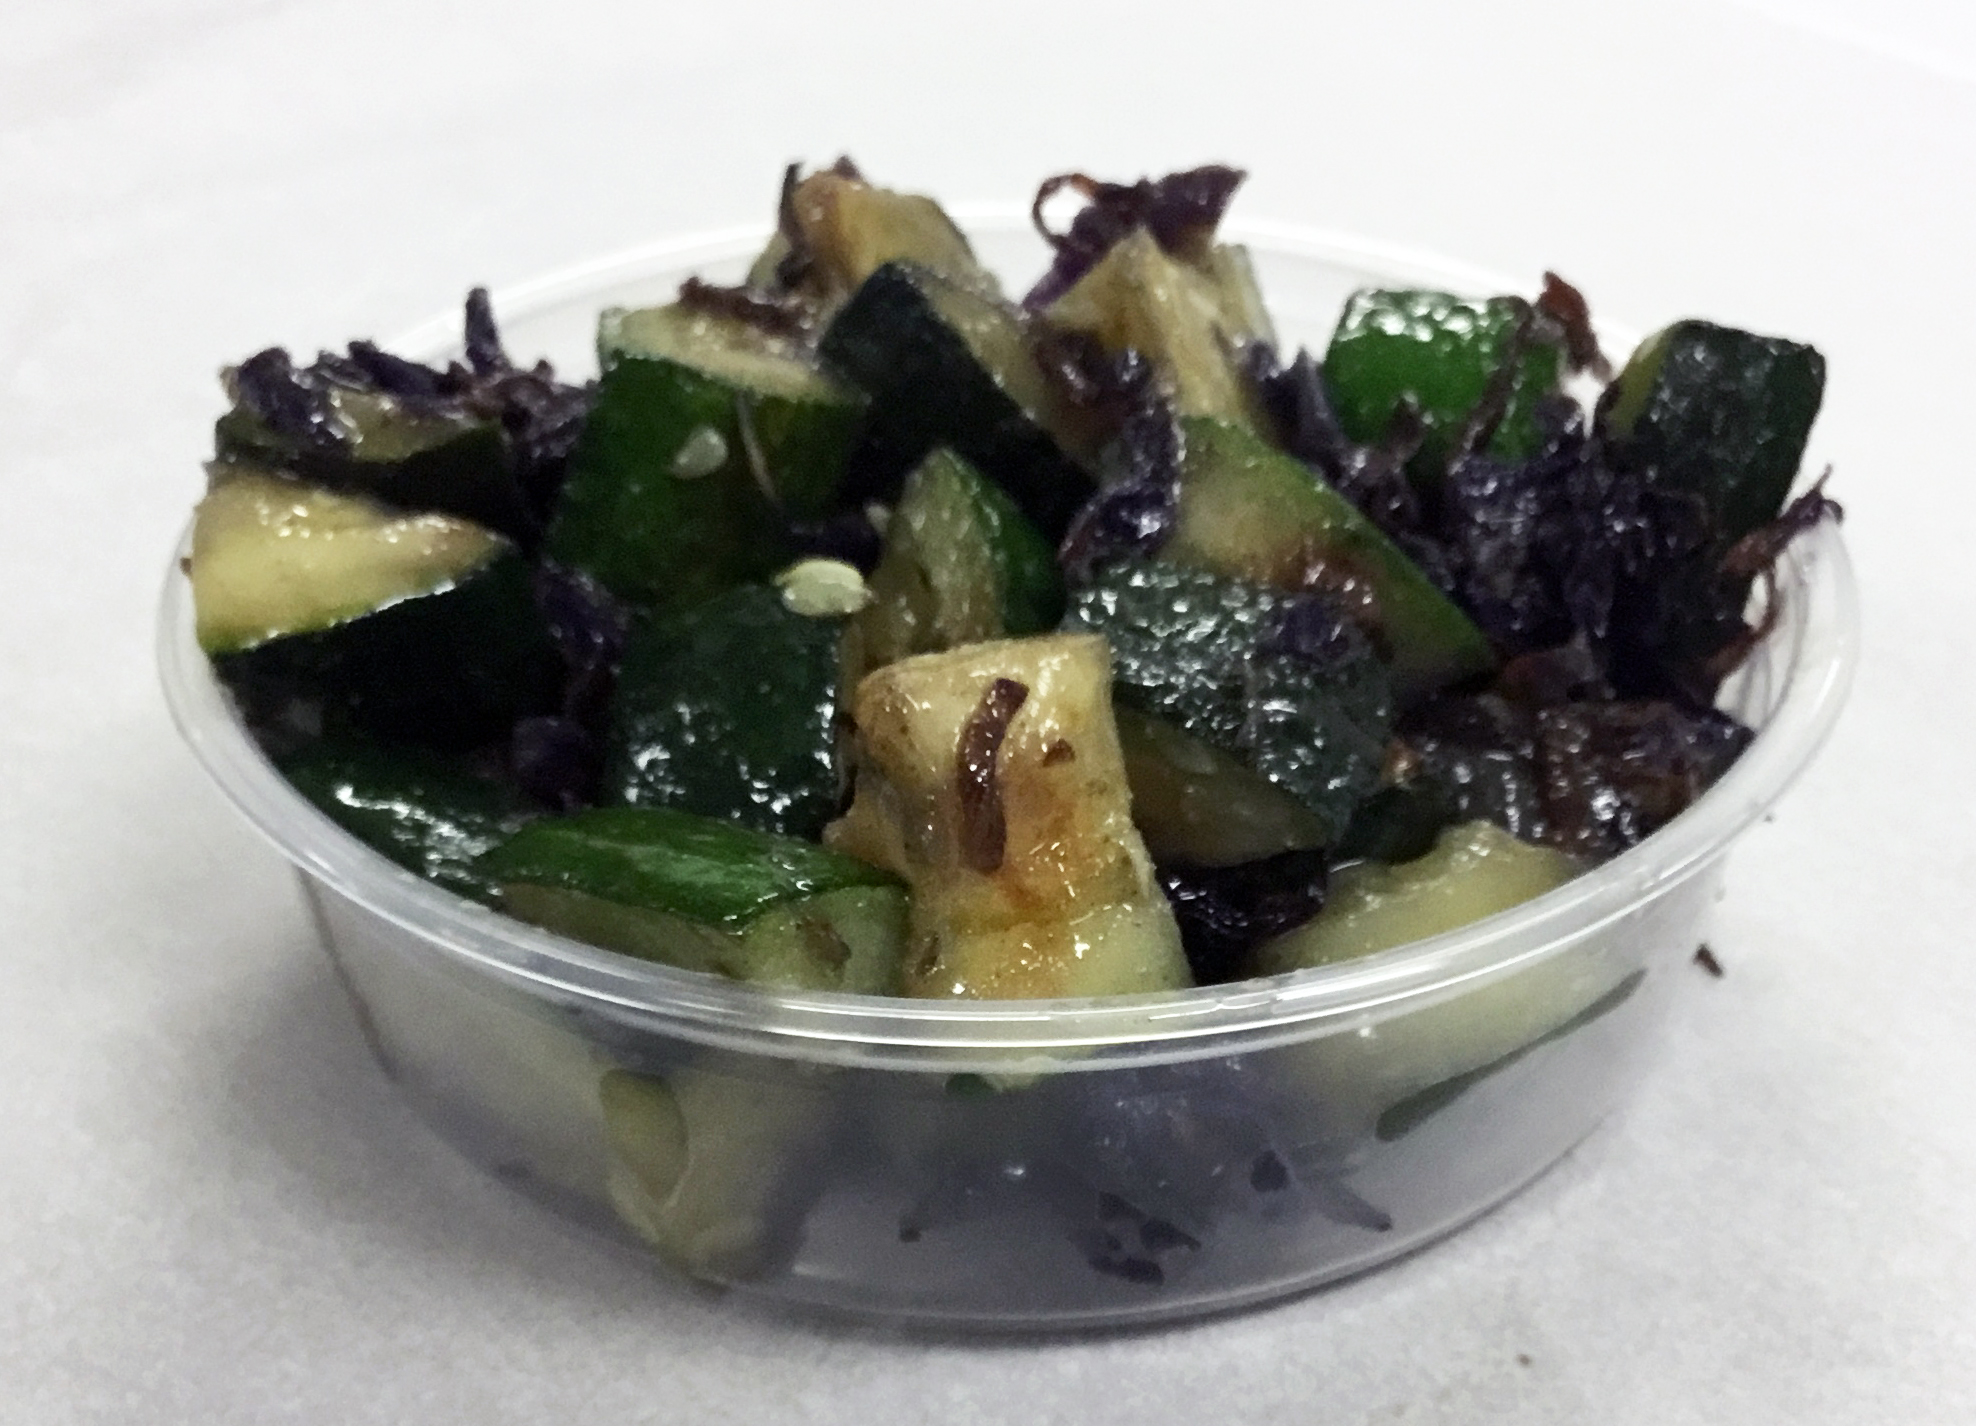 Sauteed zucchini and red cabbage with stone ground mustard.